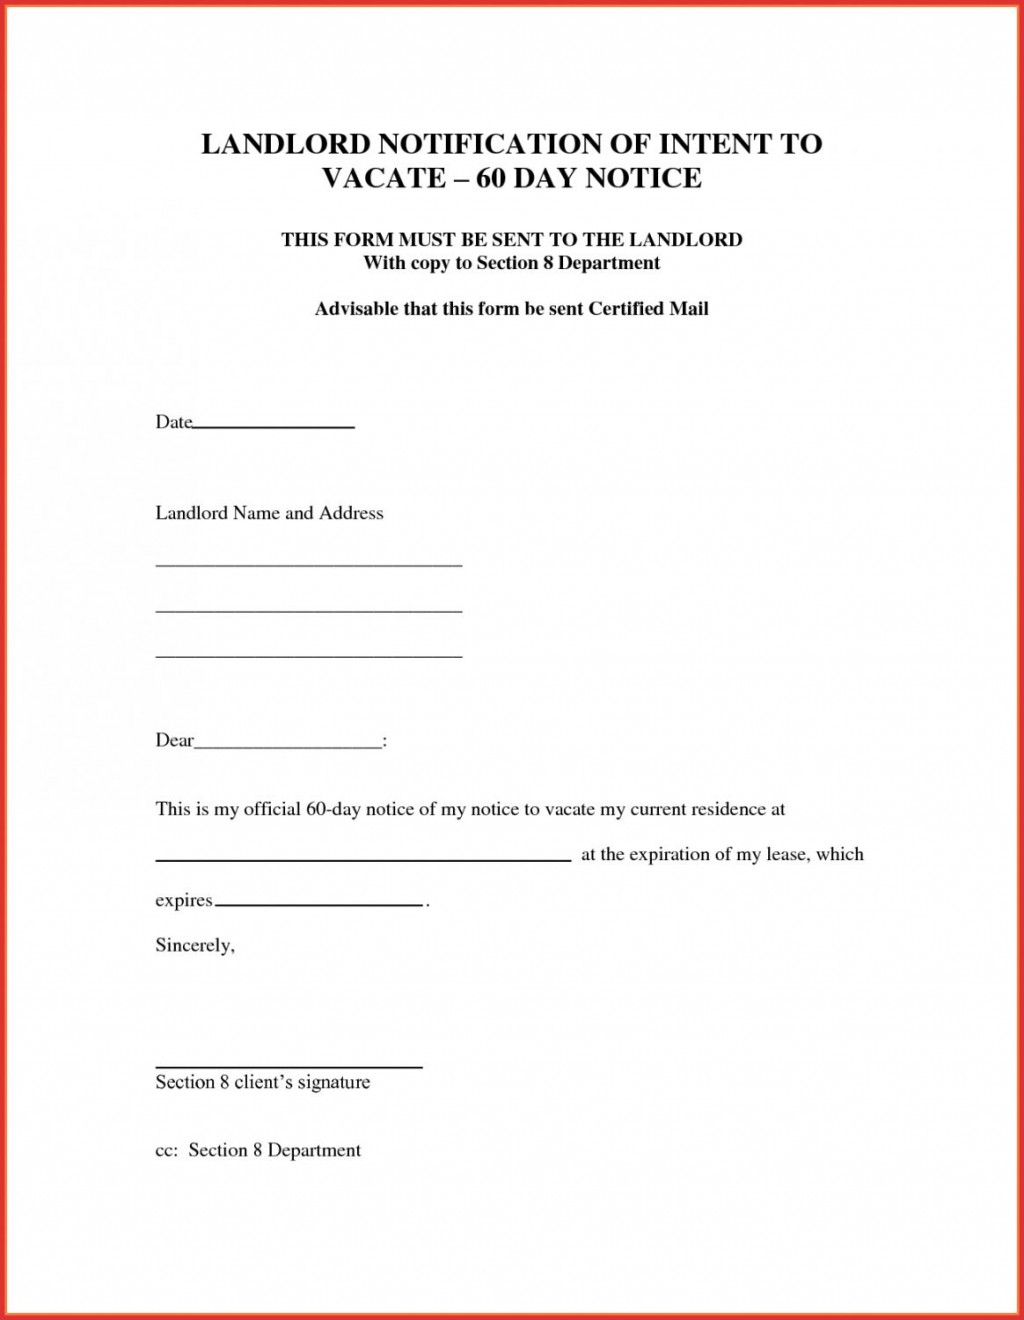 004 Dreaded 60 Day Notice Template Photo  To Landlord Move Out Letter Apartment LeaseLarge